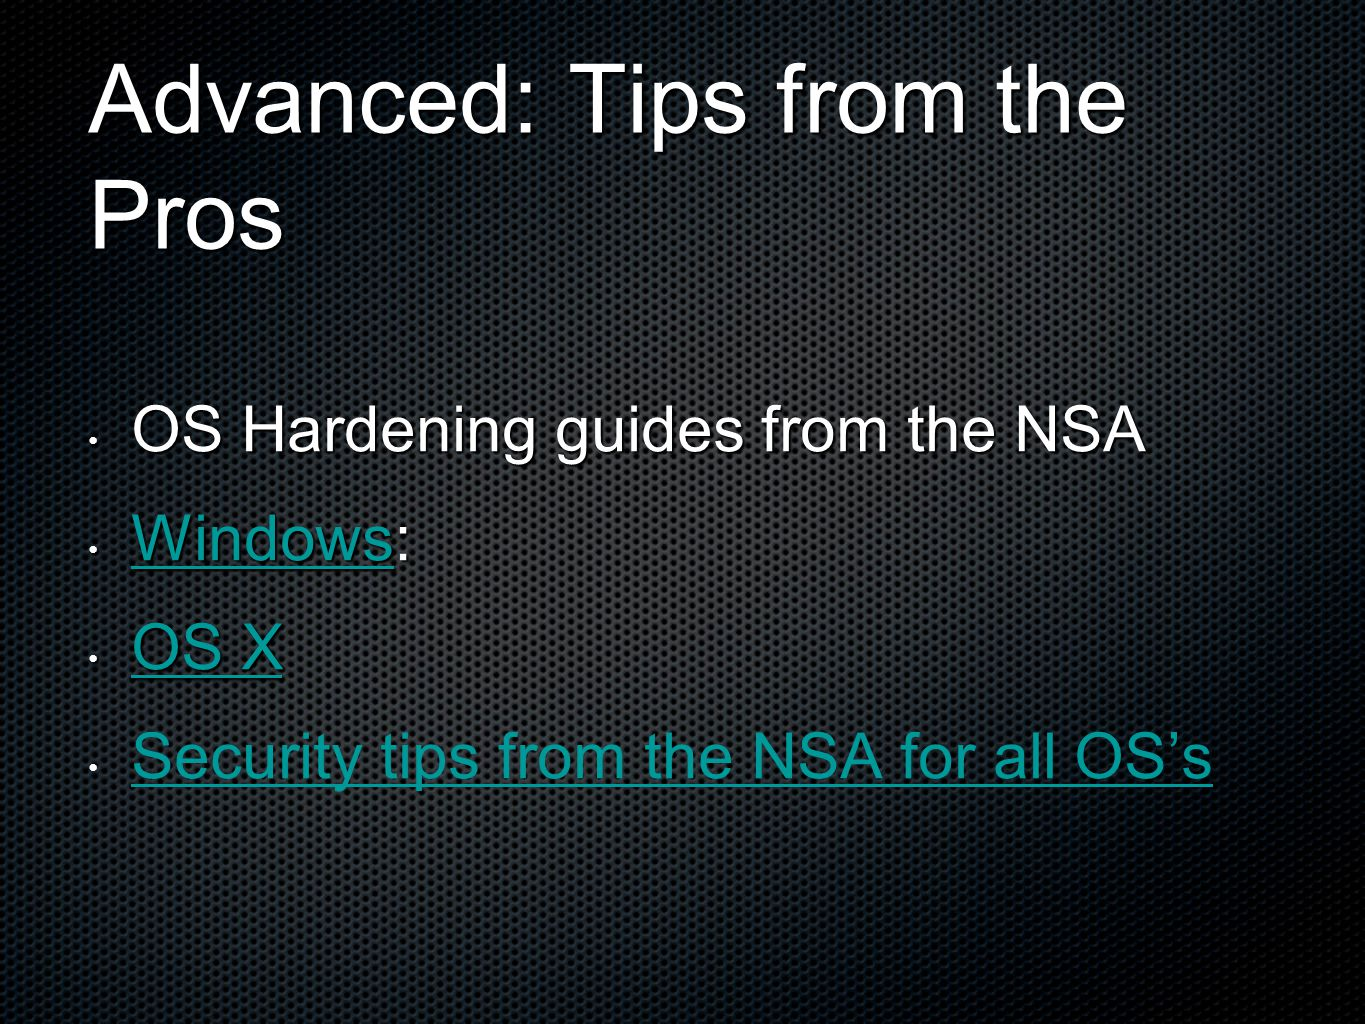 Advanced: Tips from the Pros OS Hardening guides from the NSA OS Hardening guides from the NSA Windows: Windows: Windows OS X OS X OS X OS X Security tips from the NSA for all OS's Security tips from the NSA for all OS's